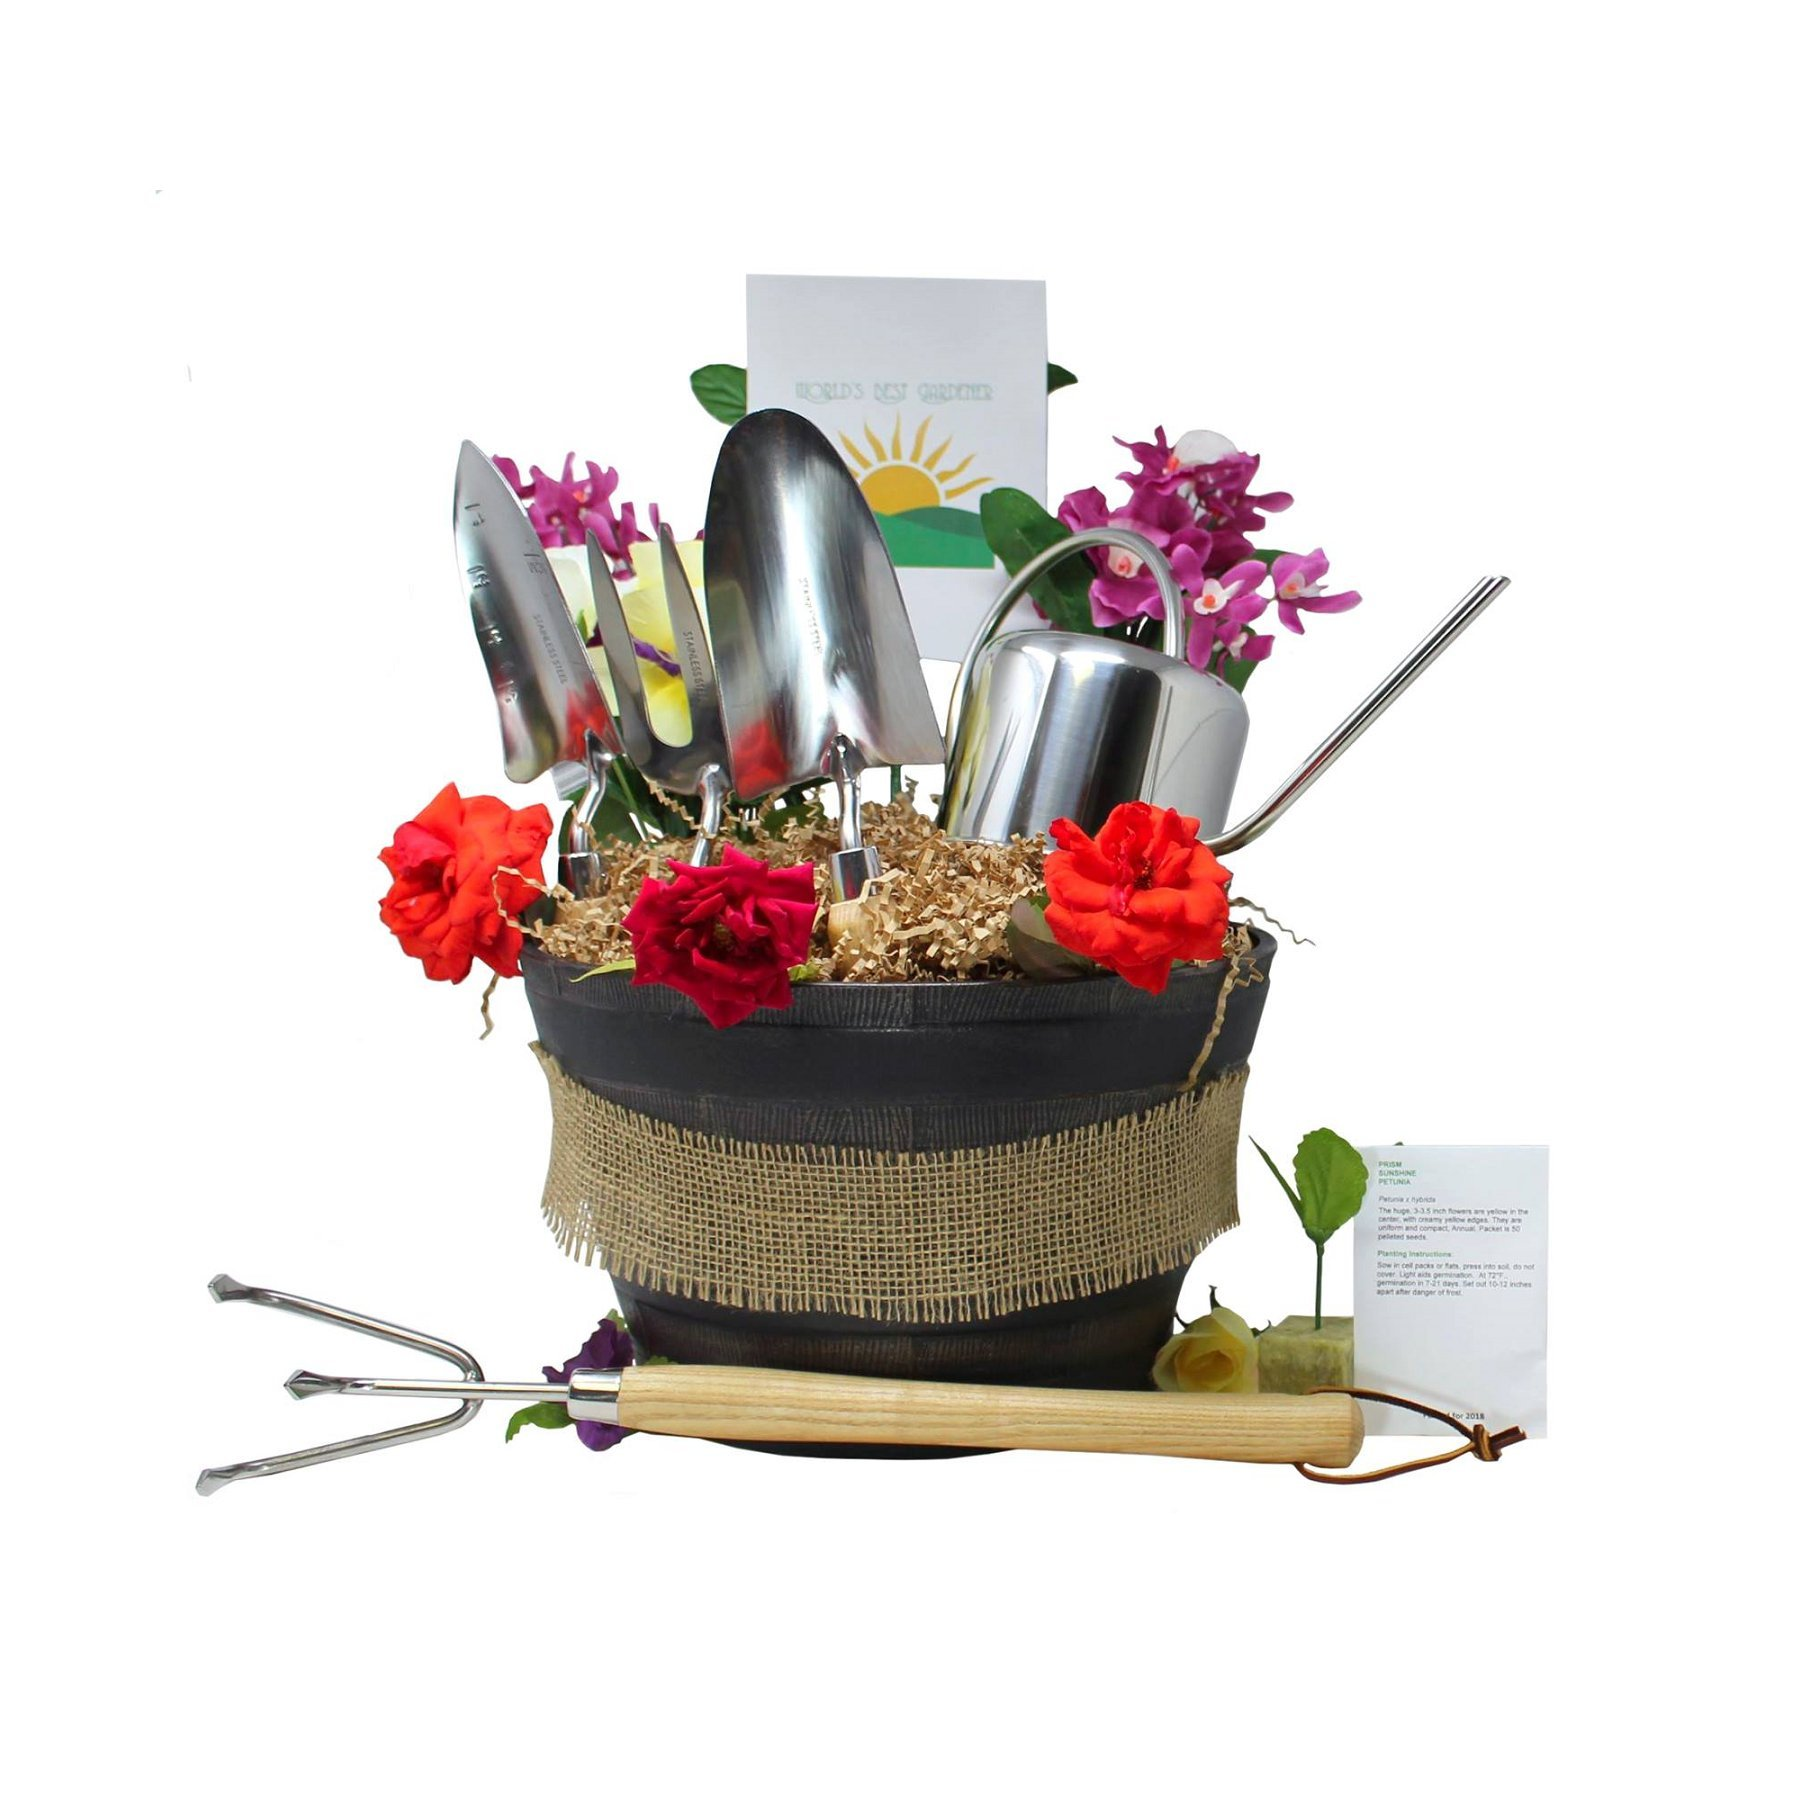 Deluxe Gardener Gift Basket Stainless Steel Tools and Decorative Planter (With Love)